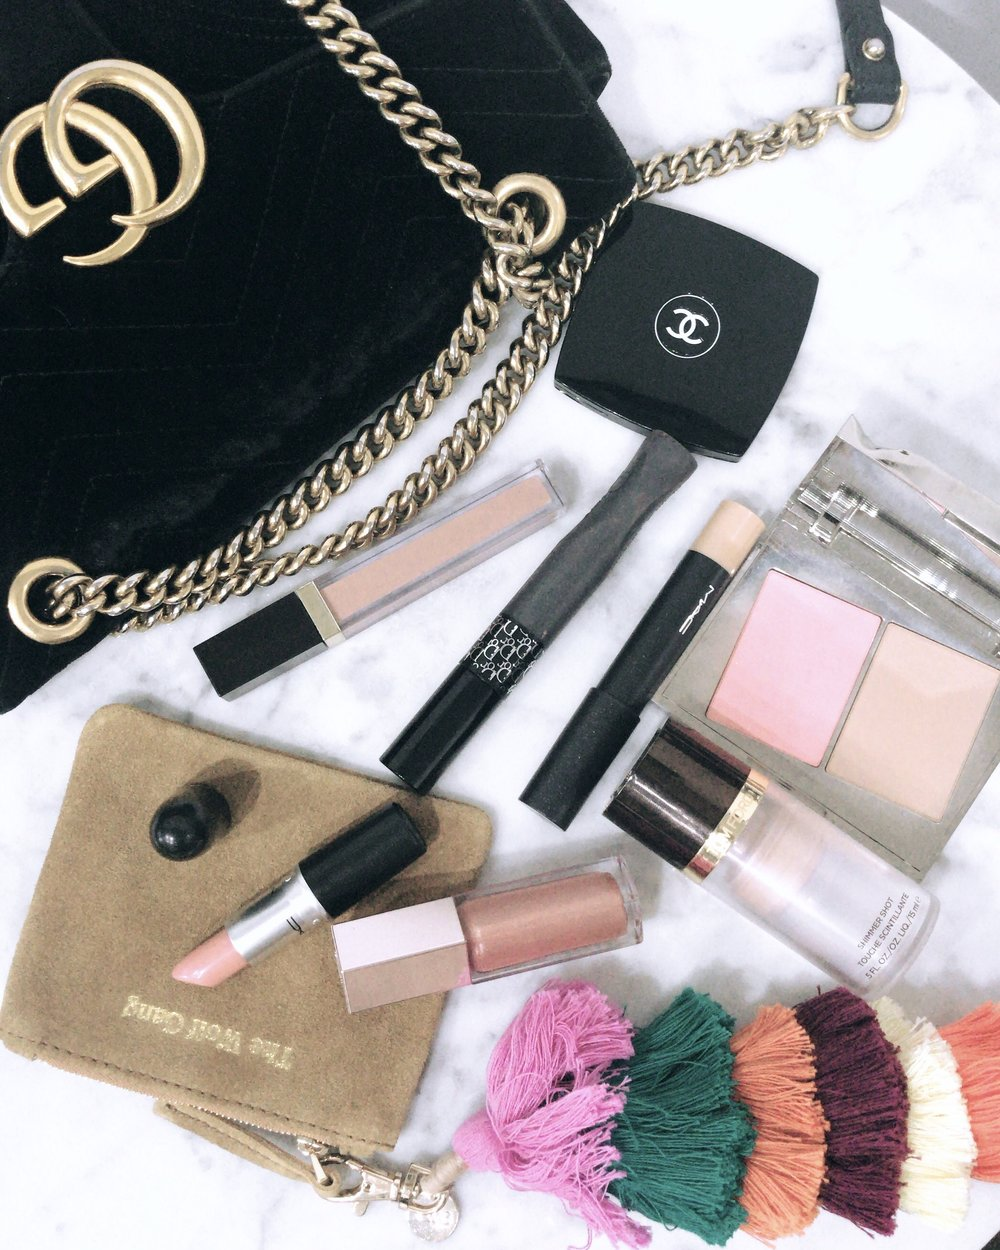 A range of make up products and fashion accessories laid out against a white background